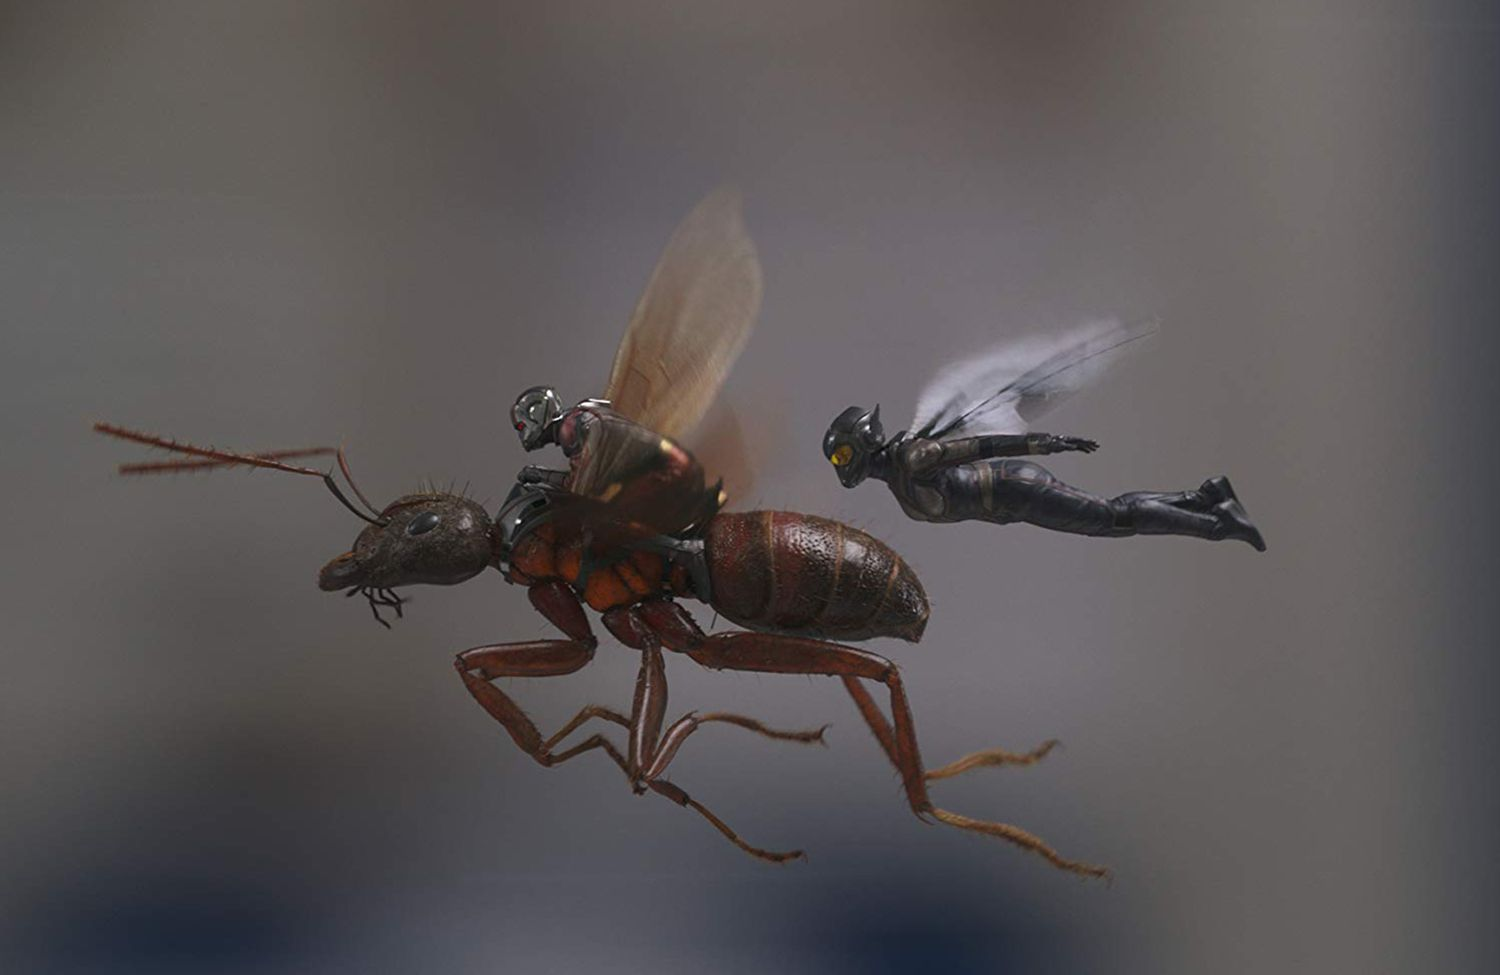 17 Ant-Man and the Wasp - Marvel Studios